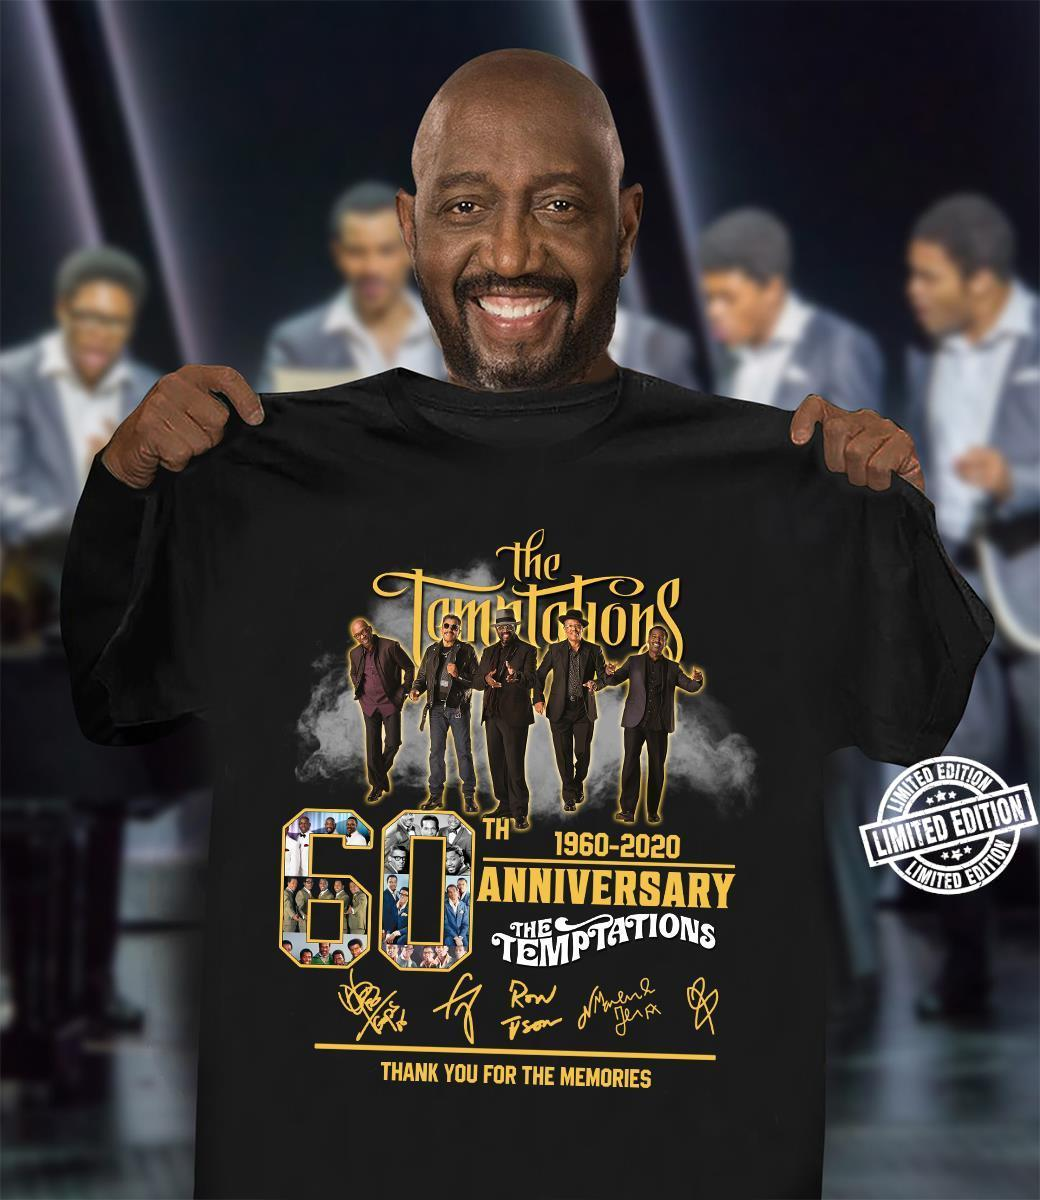 The temptations 60 th 1960-2020 anniversary thank you for the memories shirt